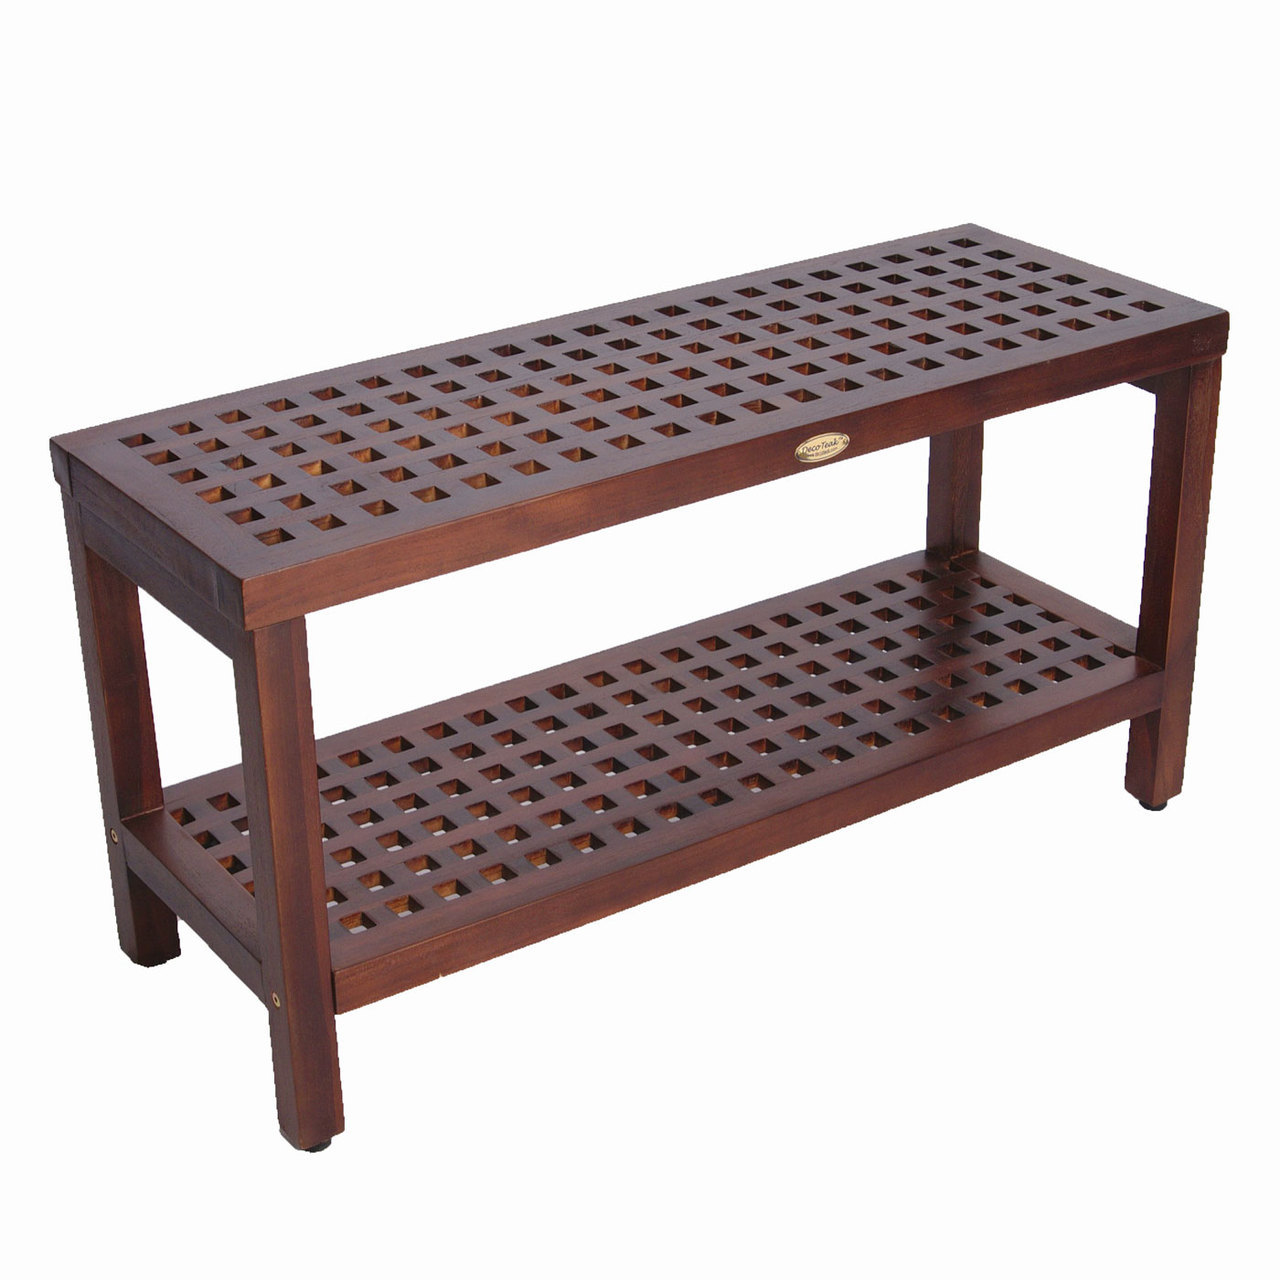 "Decoteak DT159 Espalier 35"" Lattice Teak Shower Bench with Shelf"